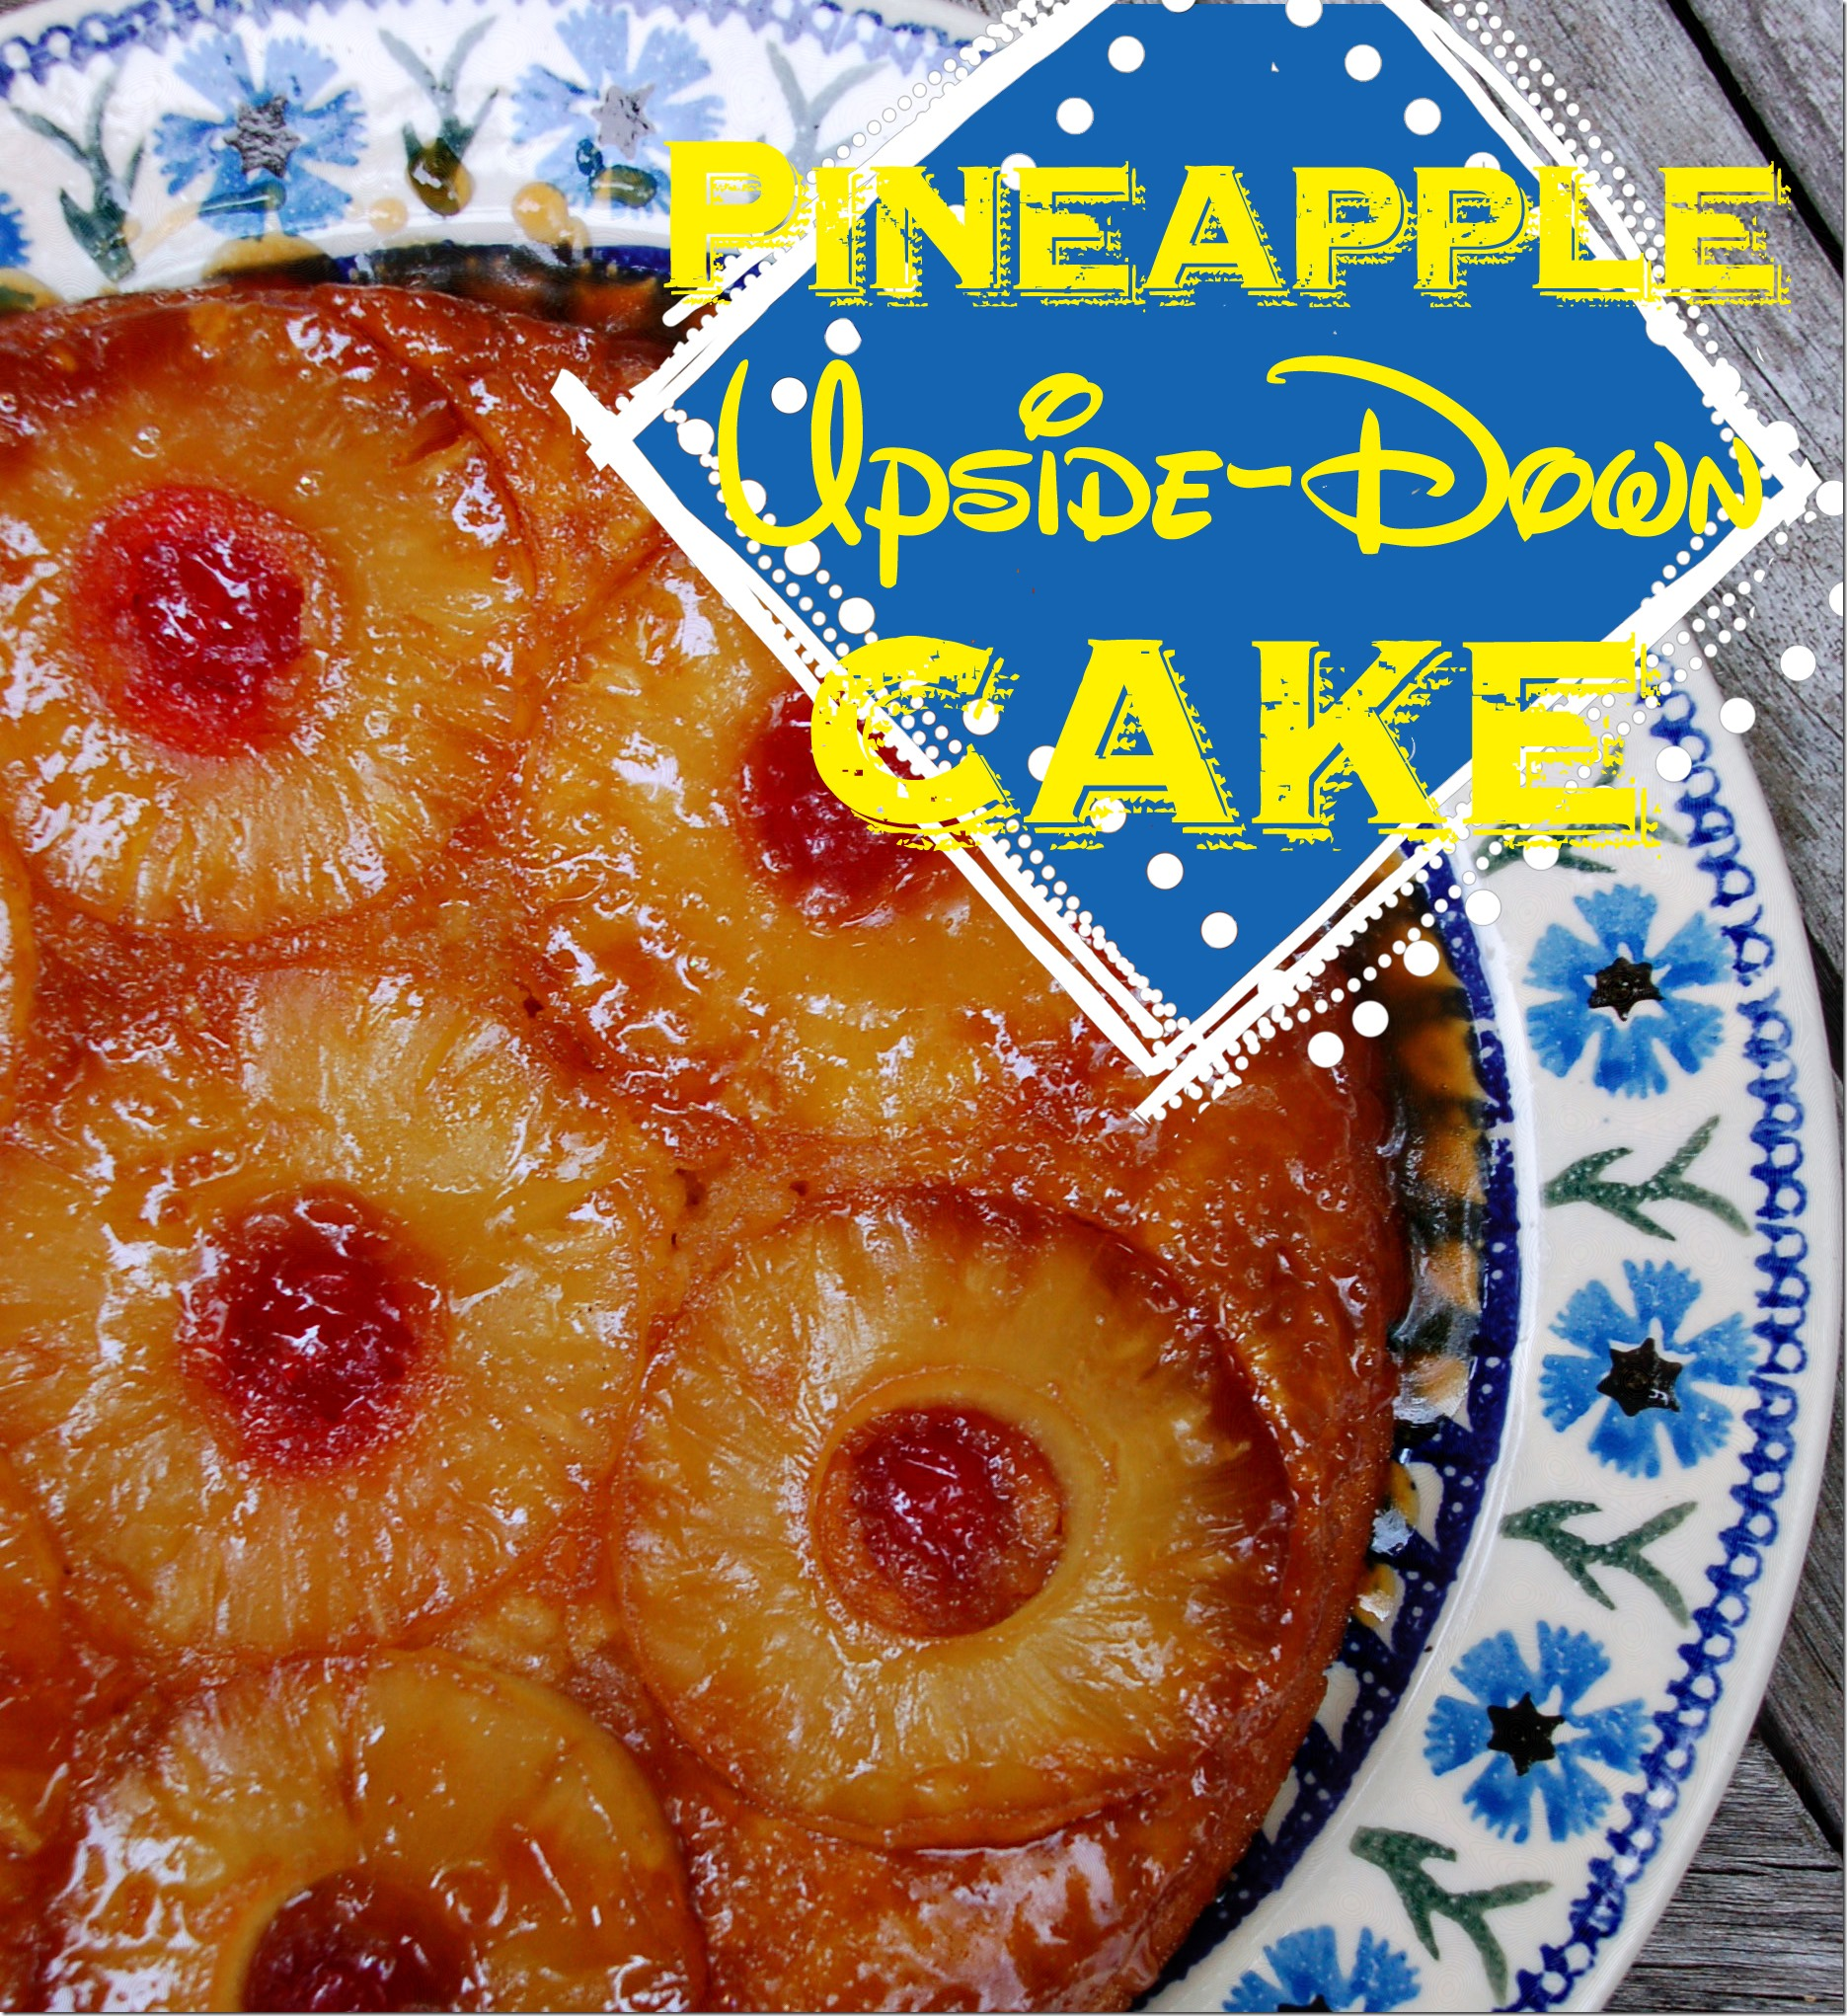 Pineapple ChaosServedDaily